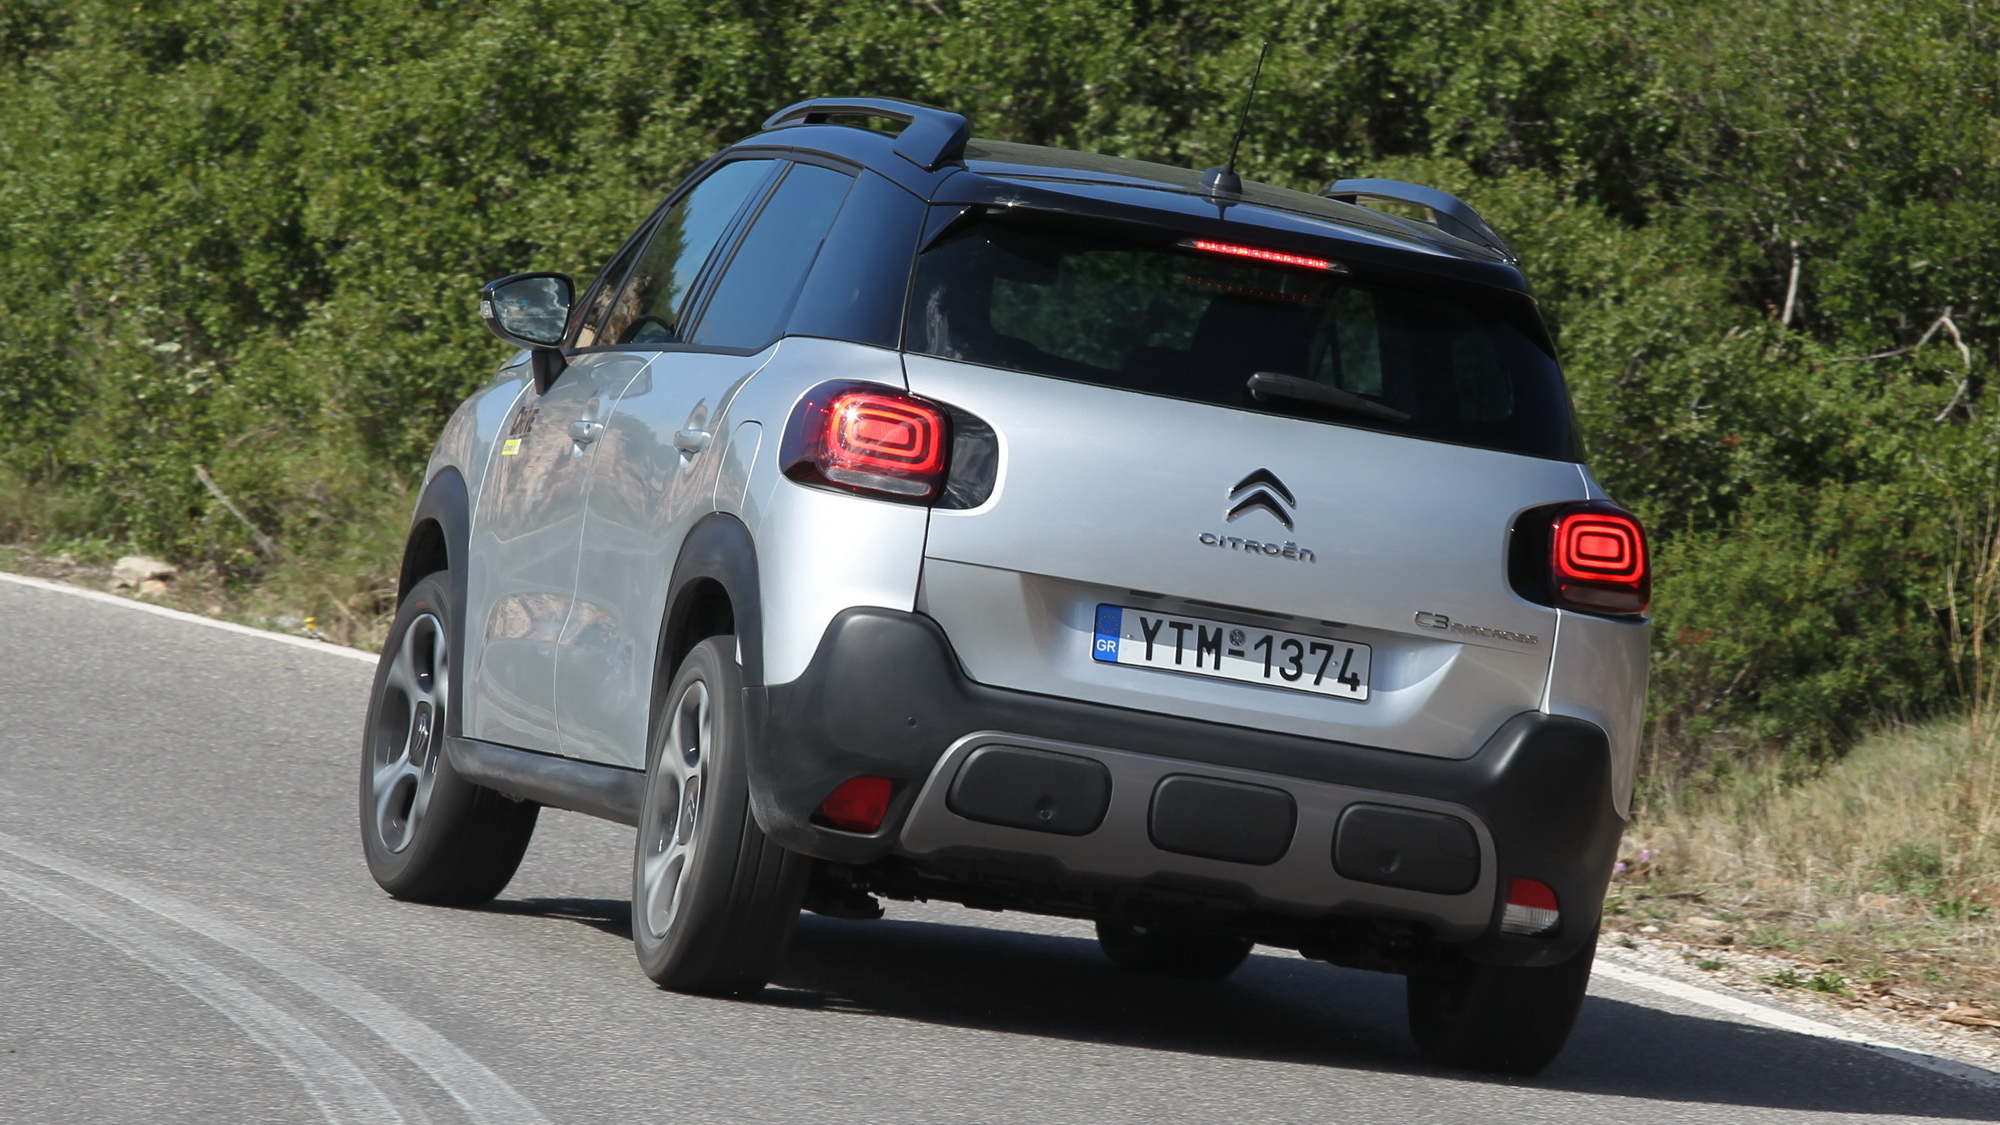 Test drive: Citroën C3 Aircross 1.5 BlueHDi 100 MT6